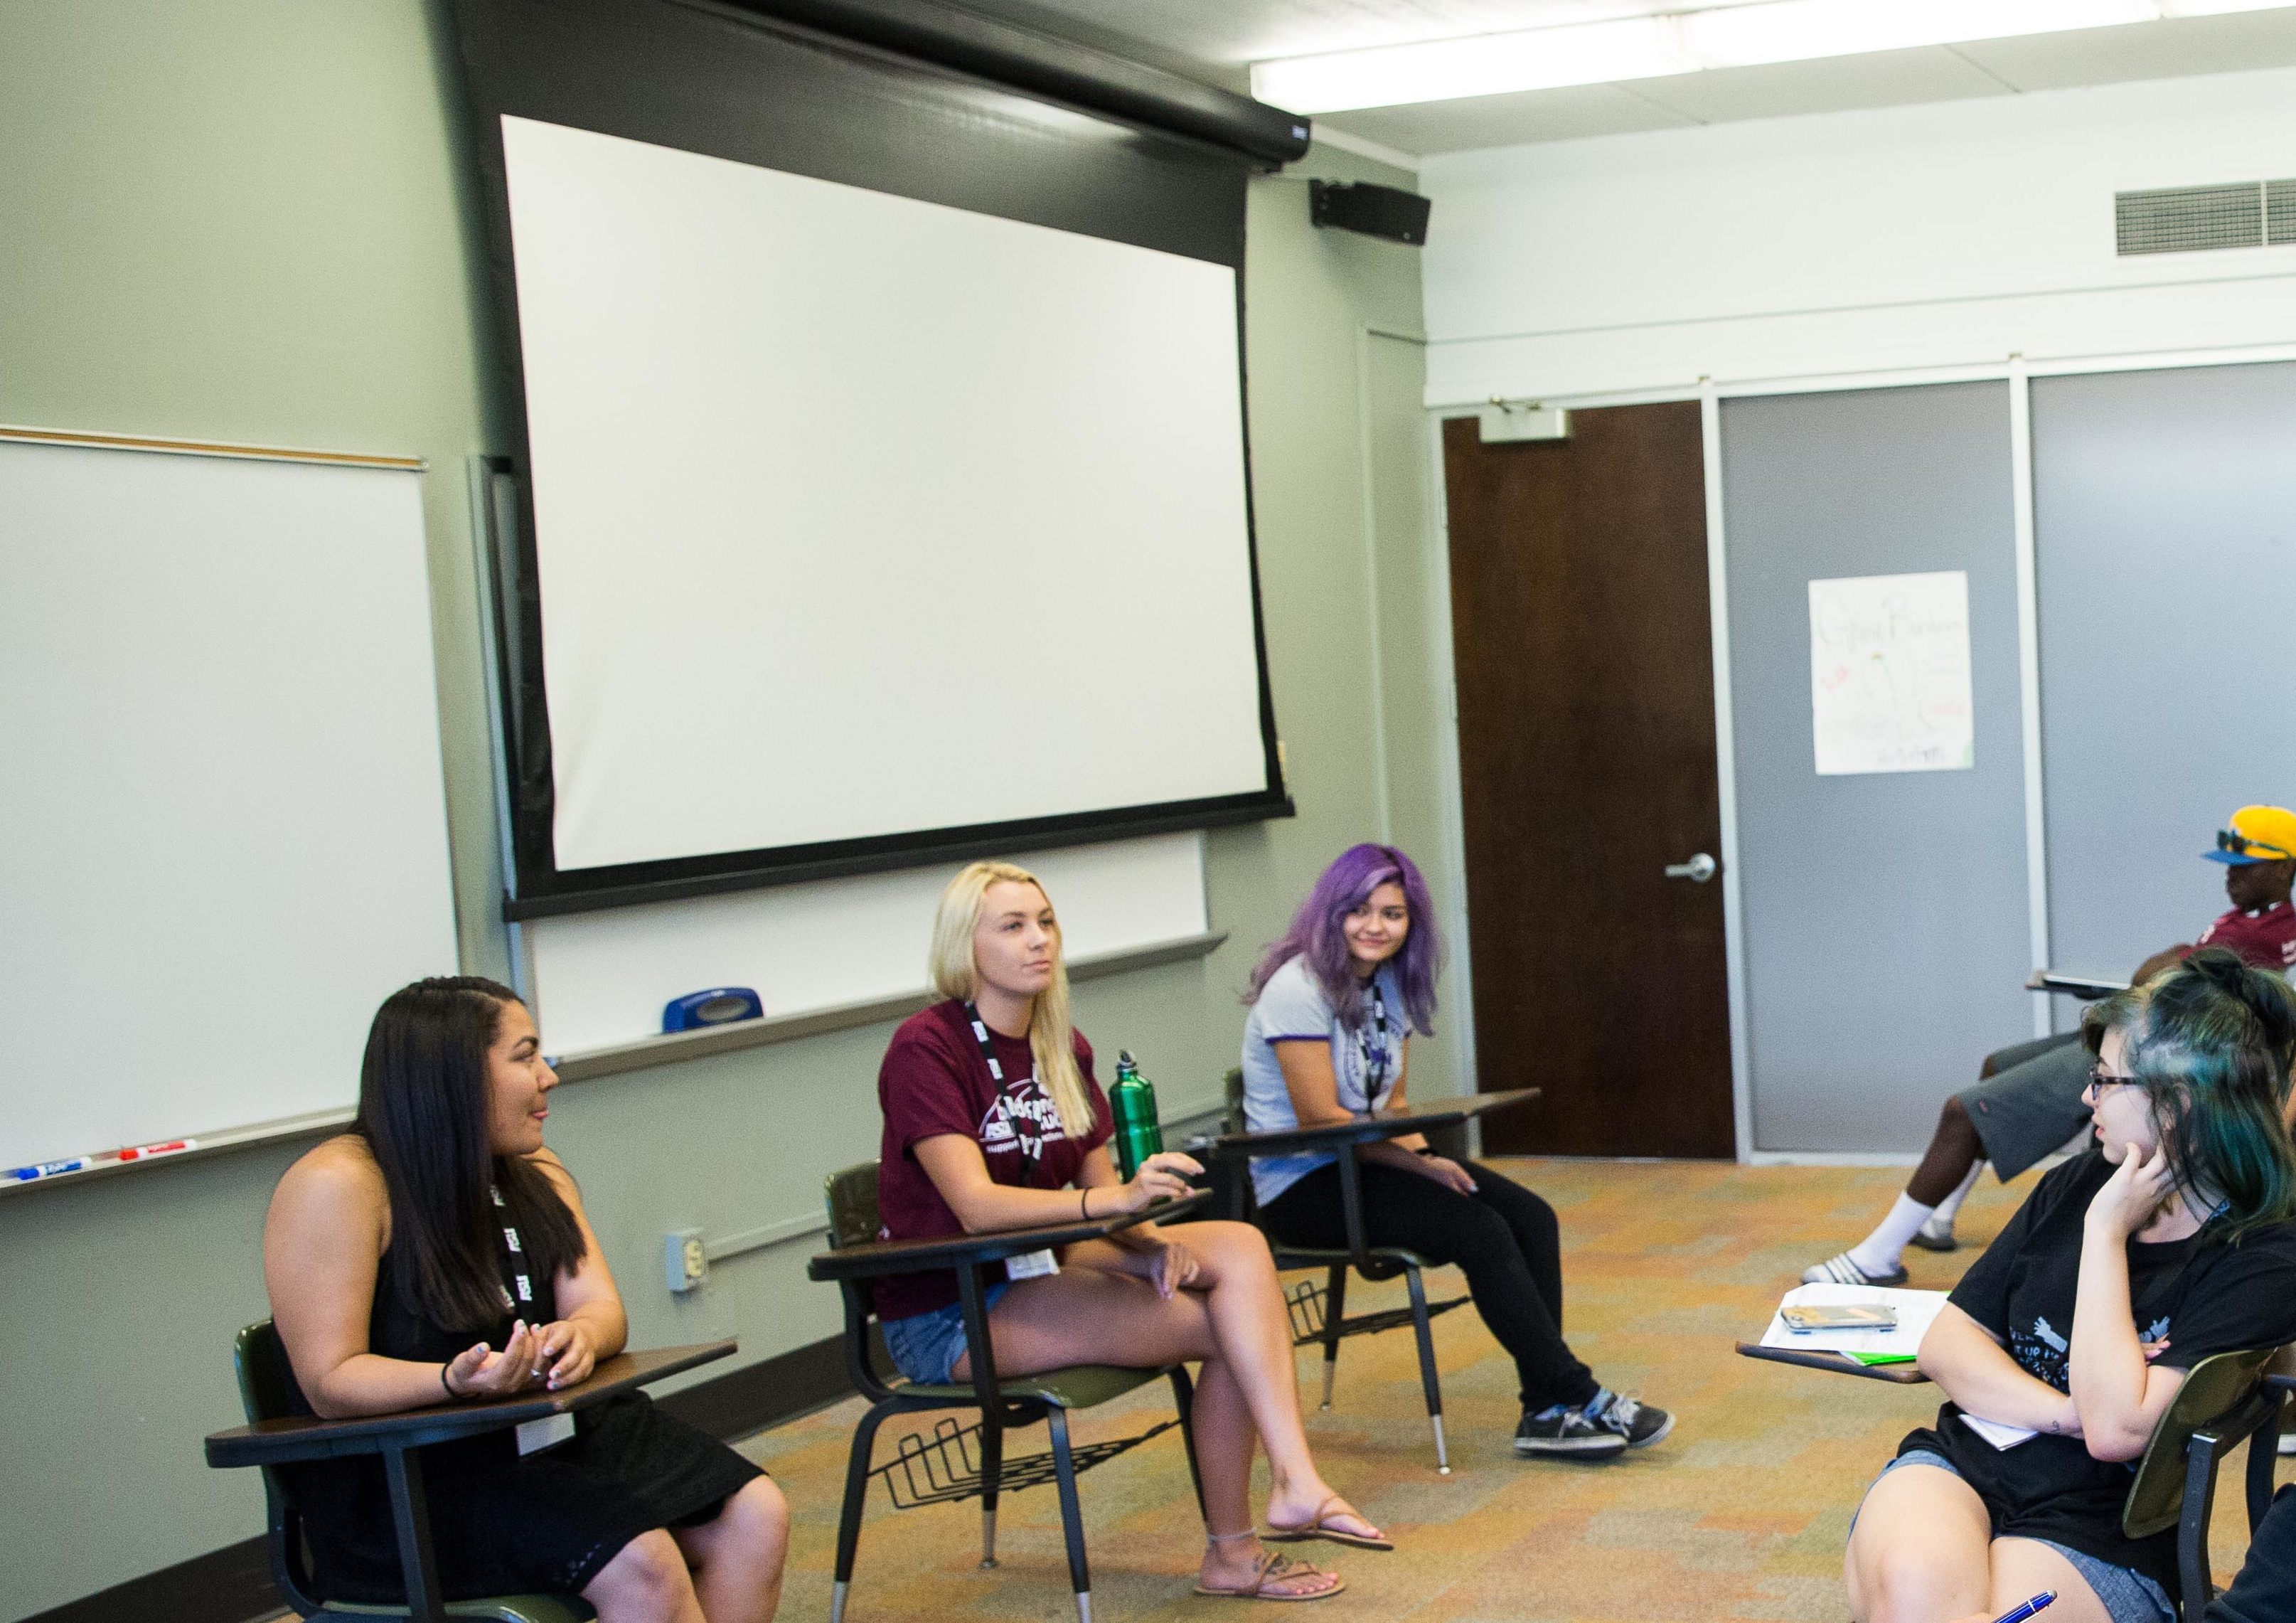 ASU Bridging Success peer mentors talked as a panel about getting involved in student clubs and other organizations